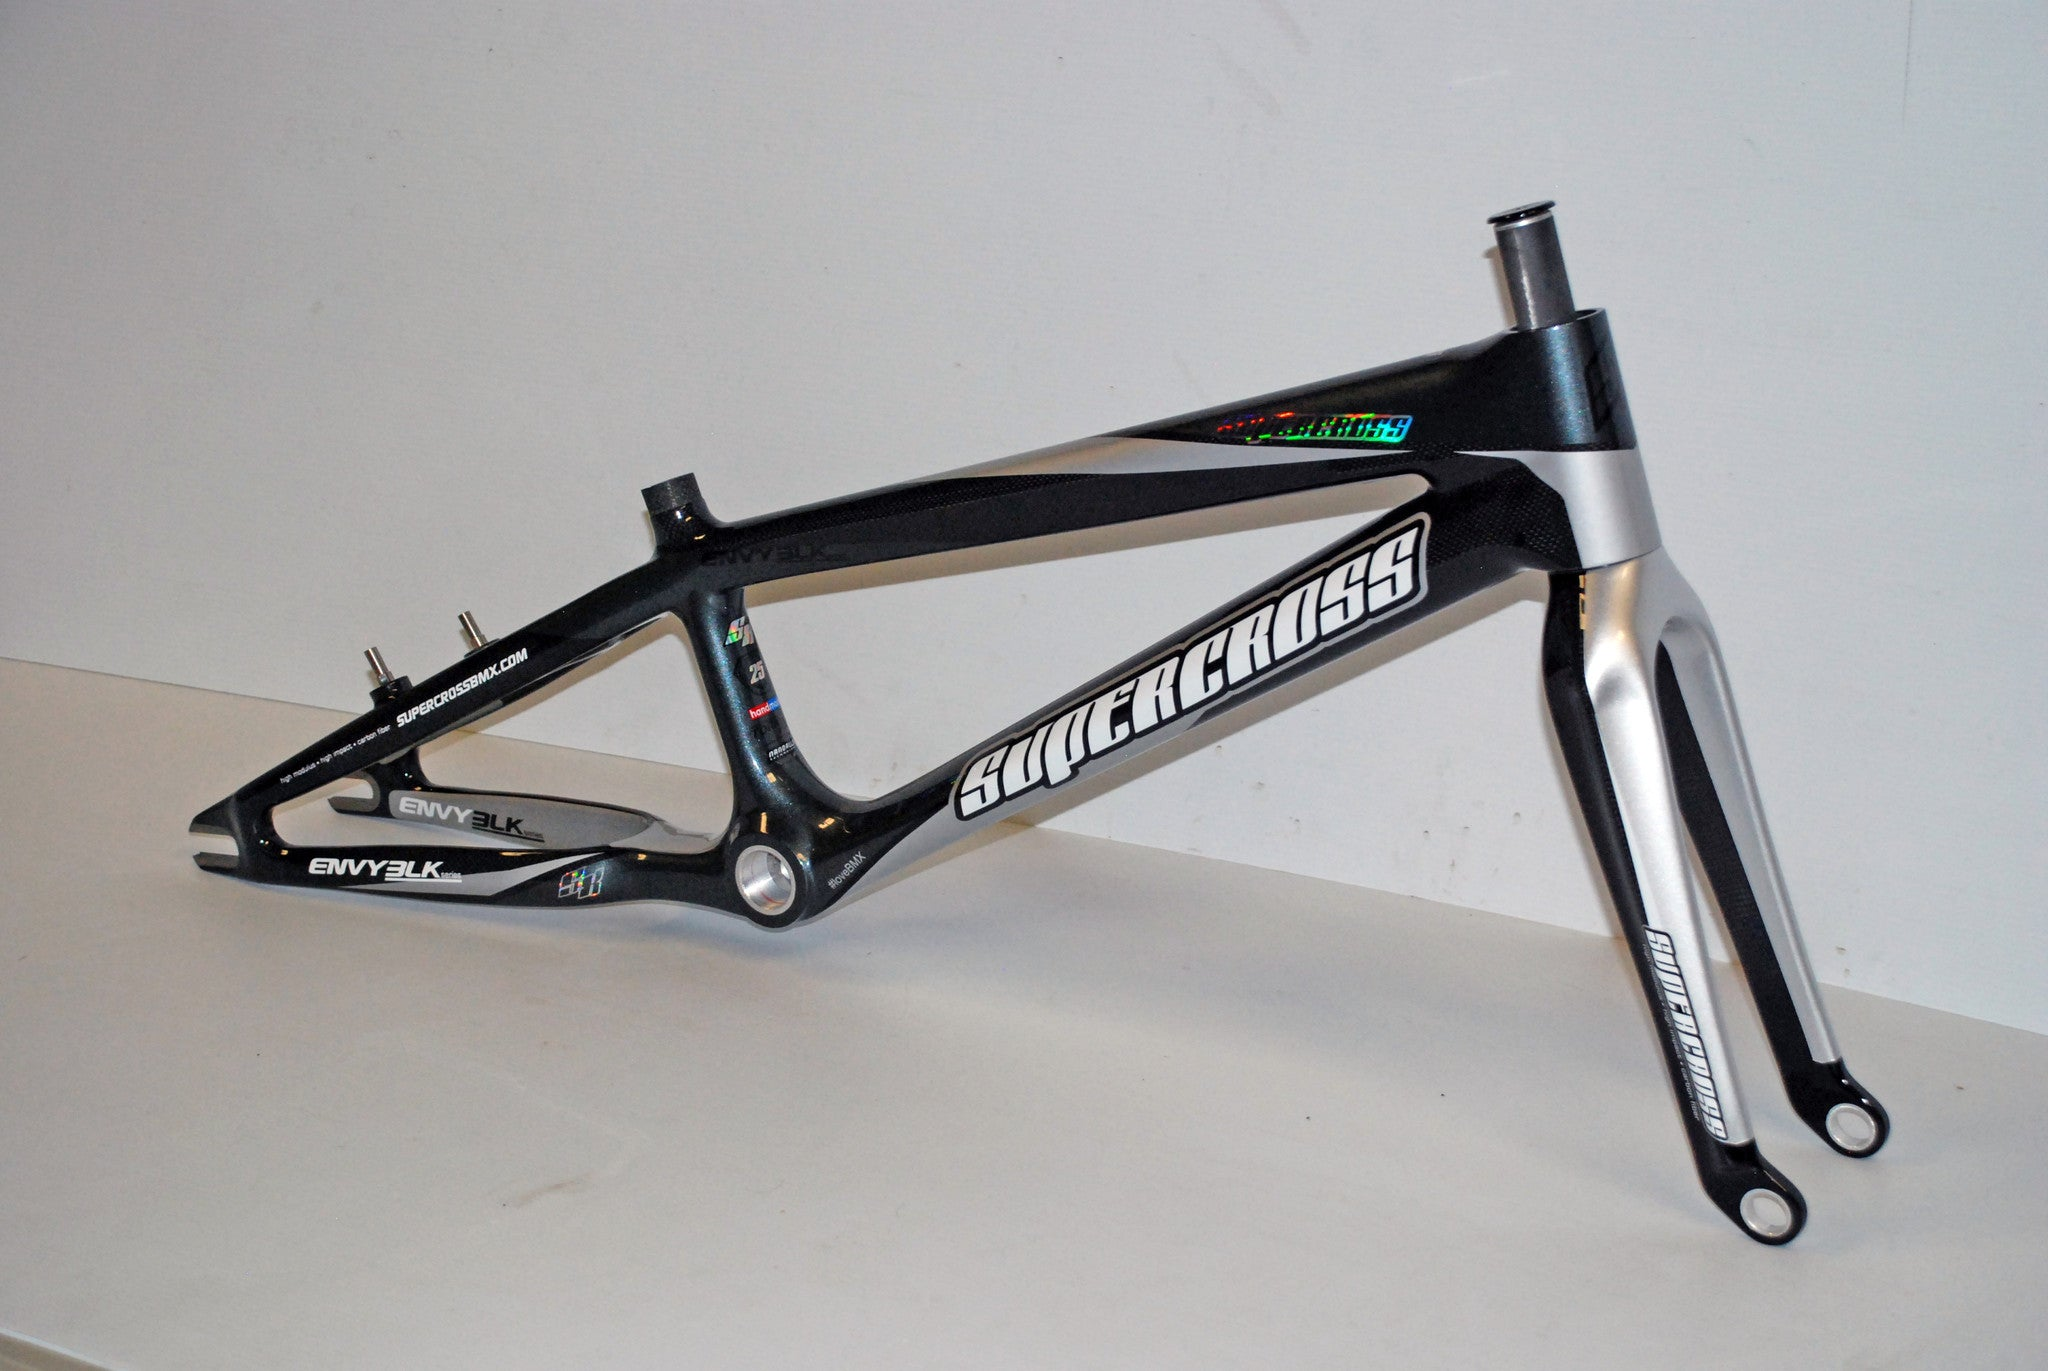 supercross envy blk carbon fiber bmx race frame supercross bmx